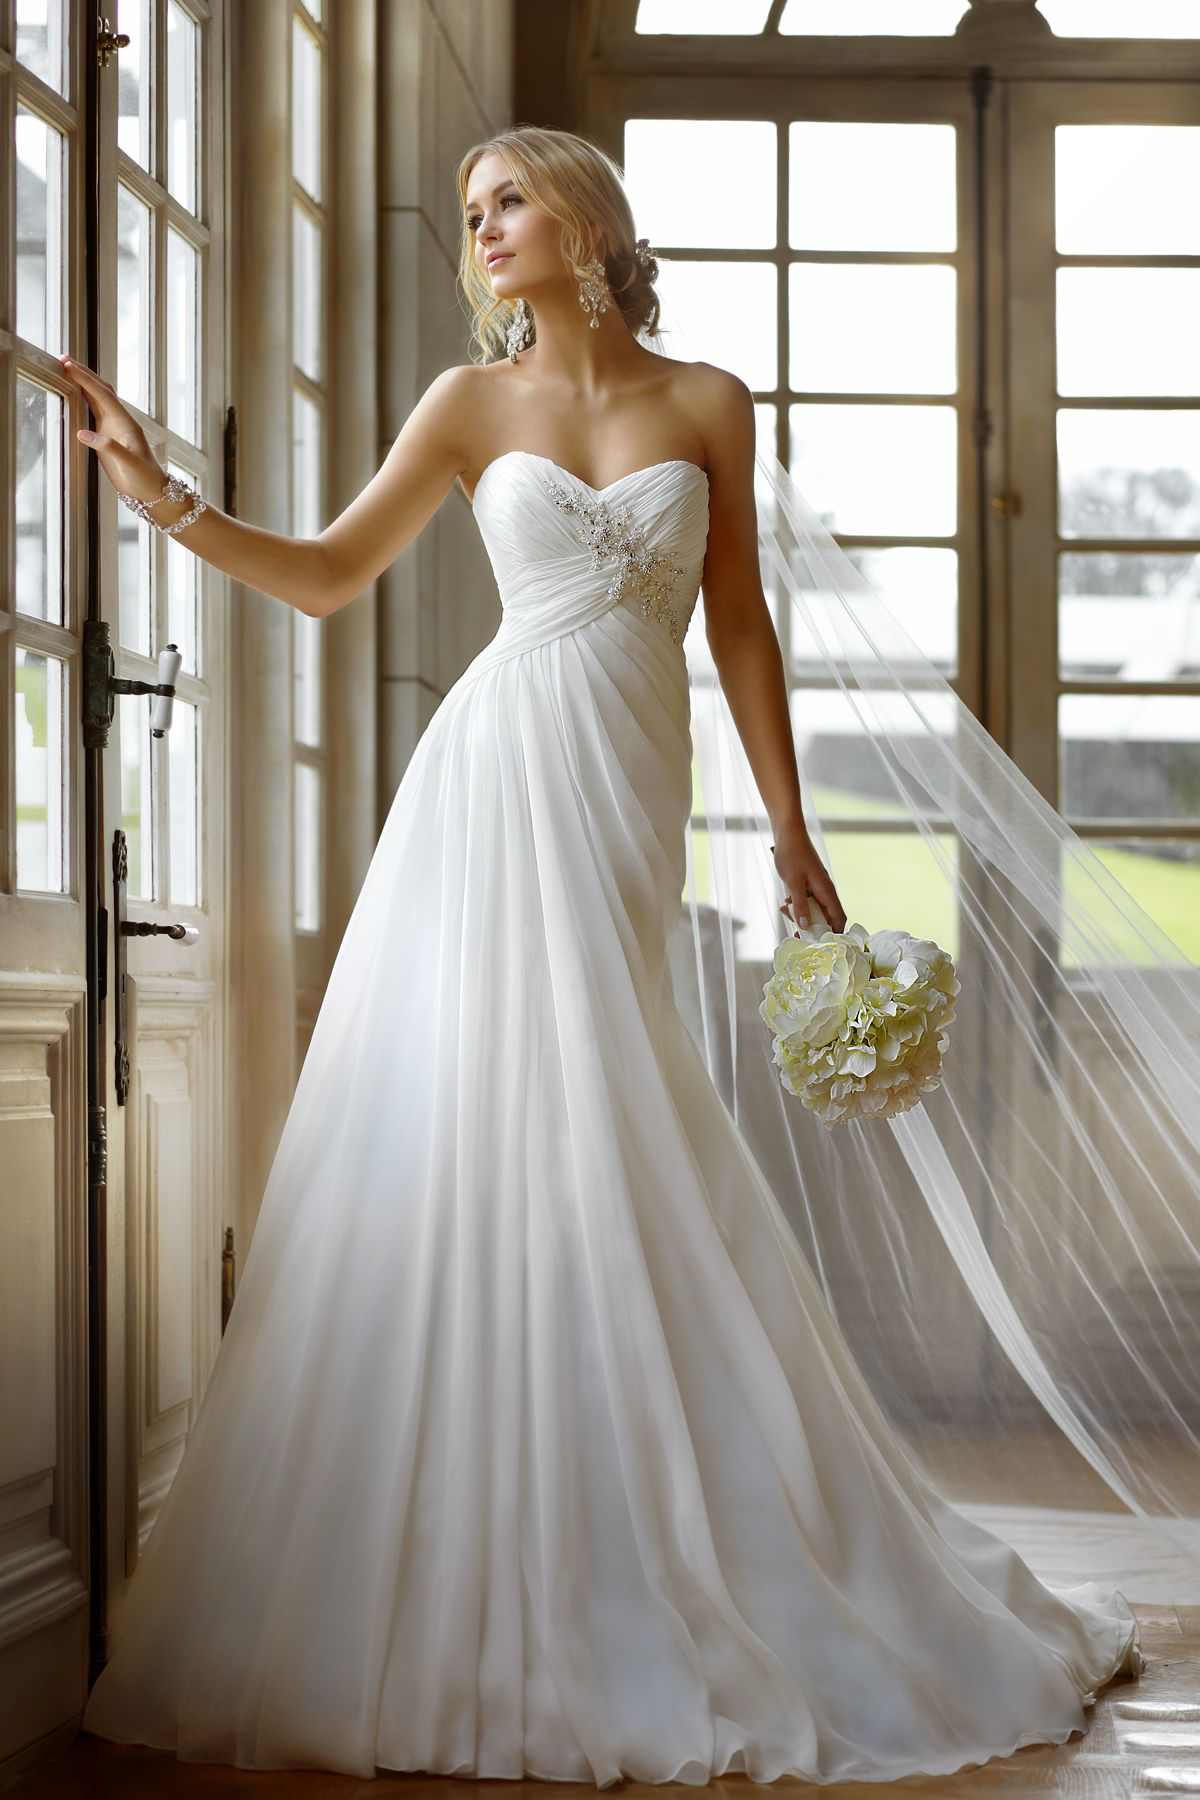 Casual wedding dresses with sleeves  wedding dresses with straps or sleeves  Casual Beach Wedding